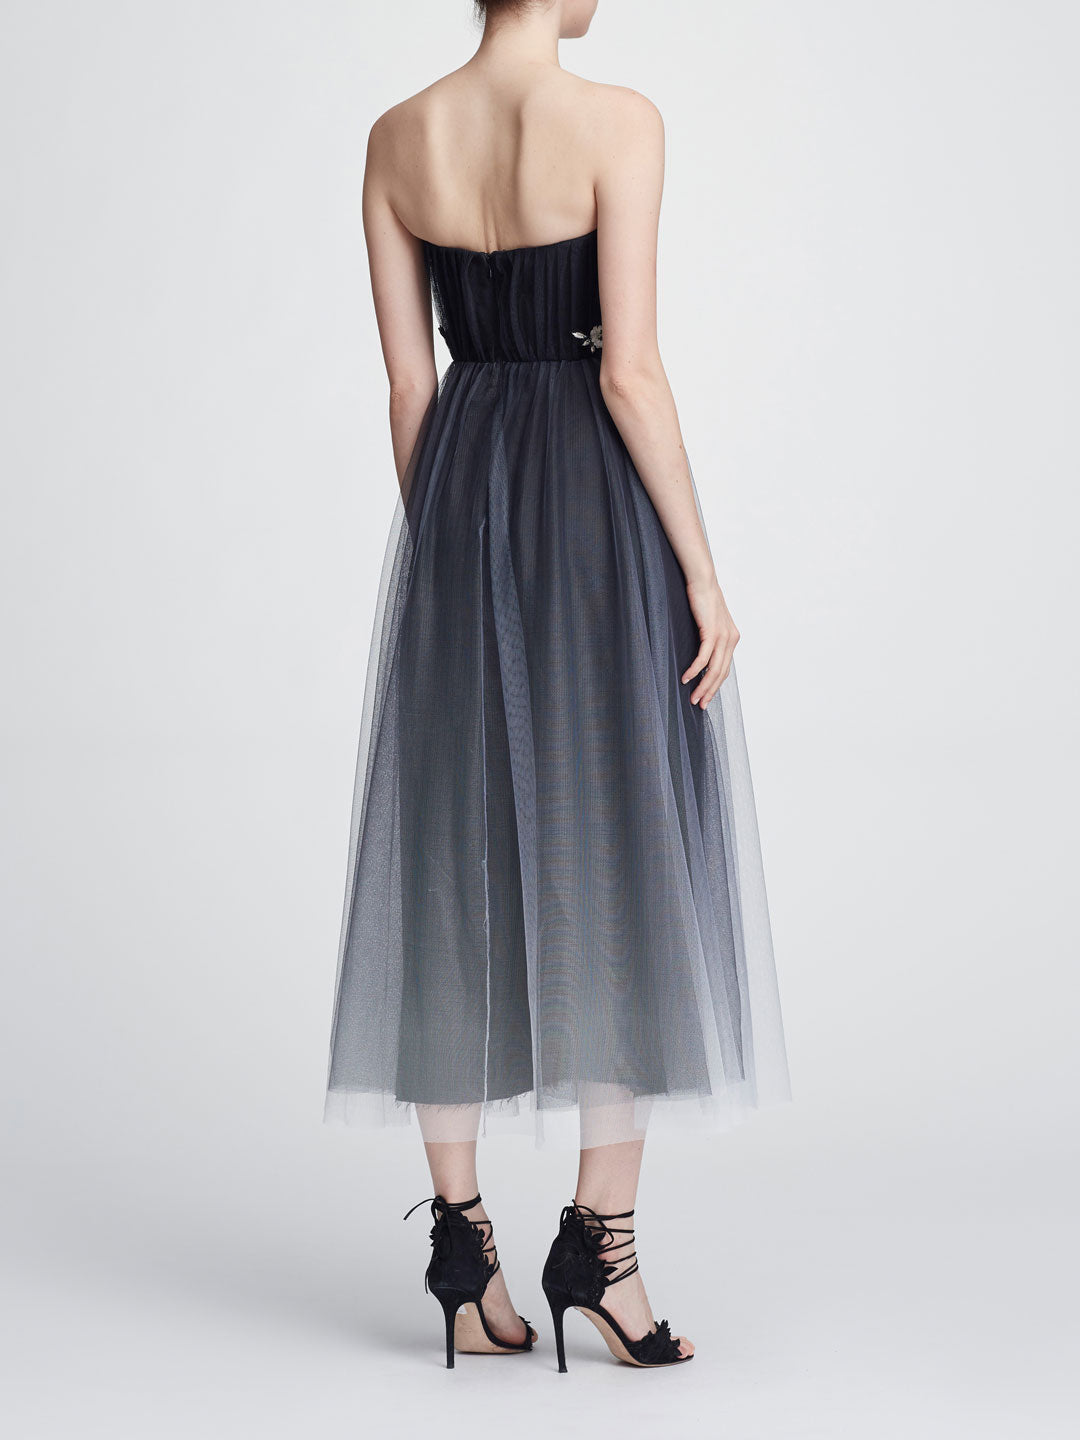 Strapless Tulle Tea-Length Gown